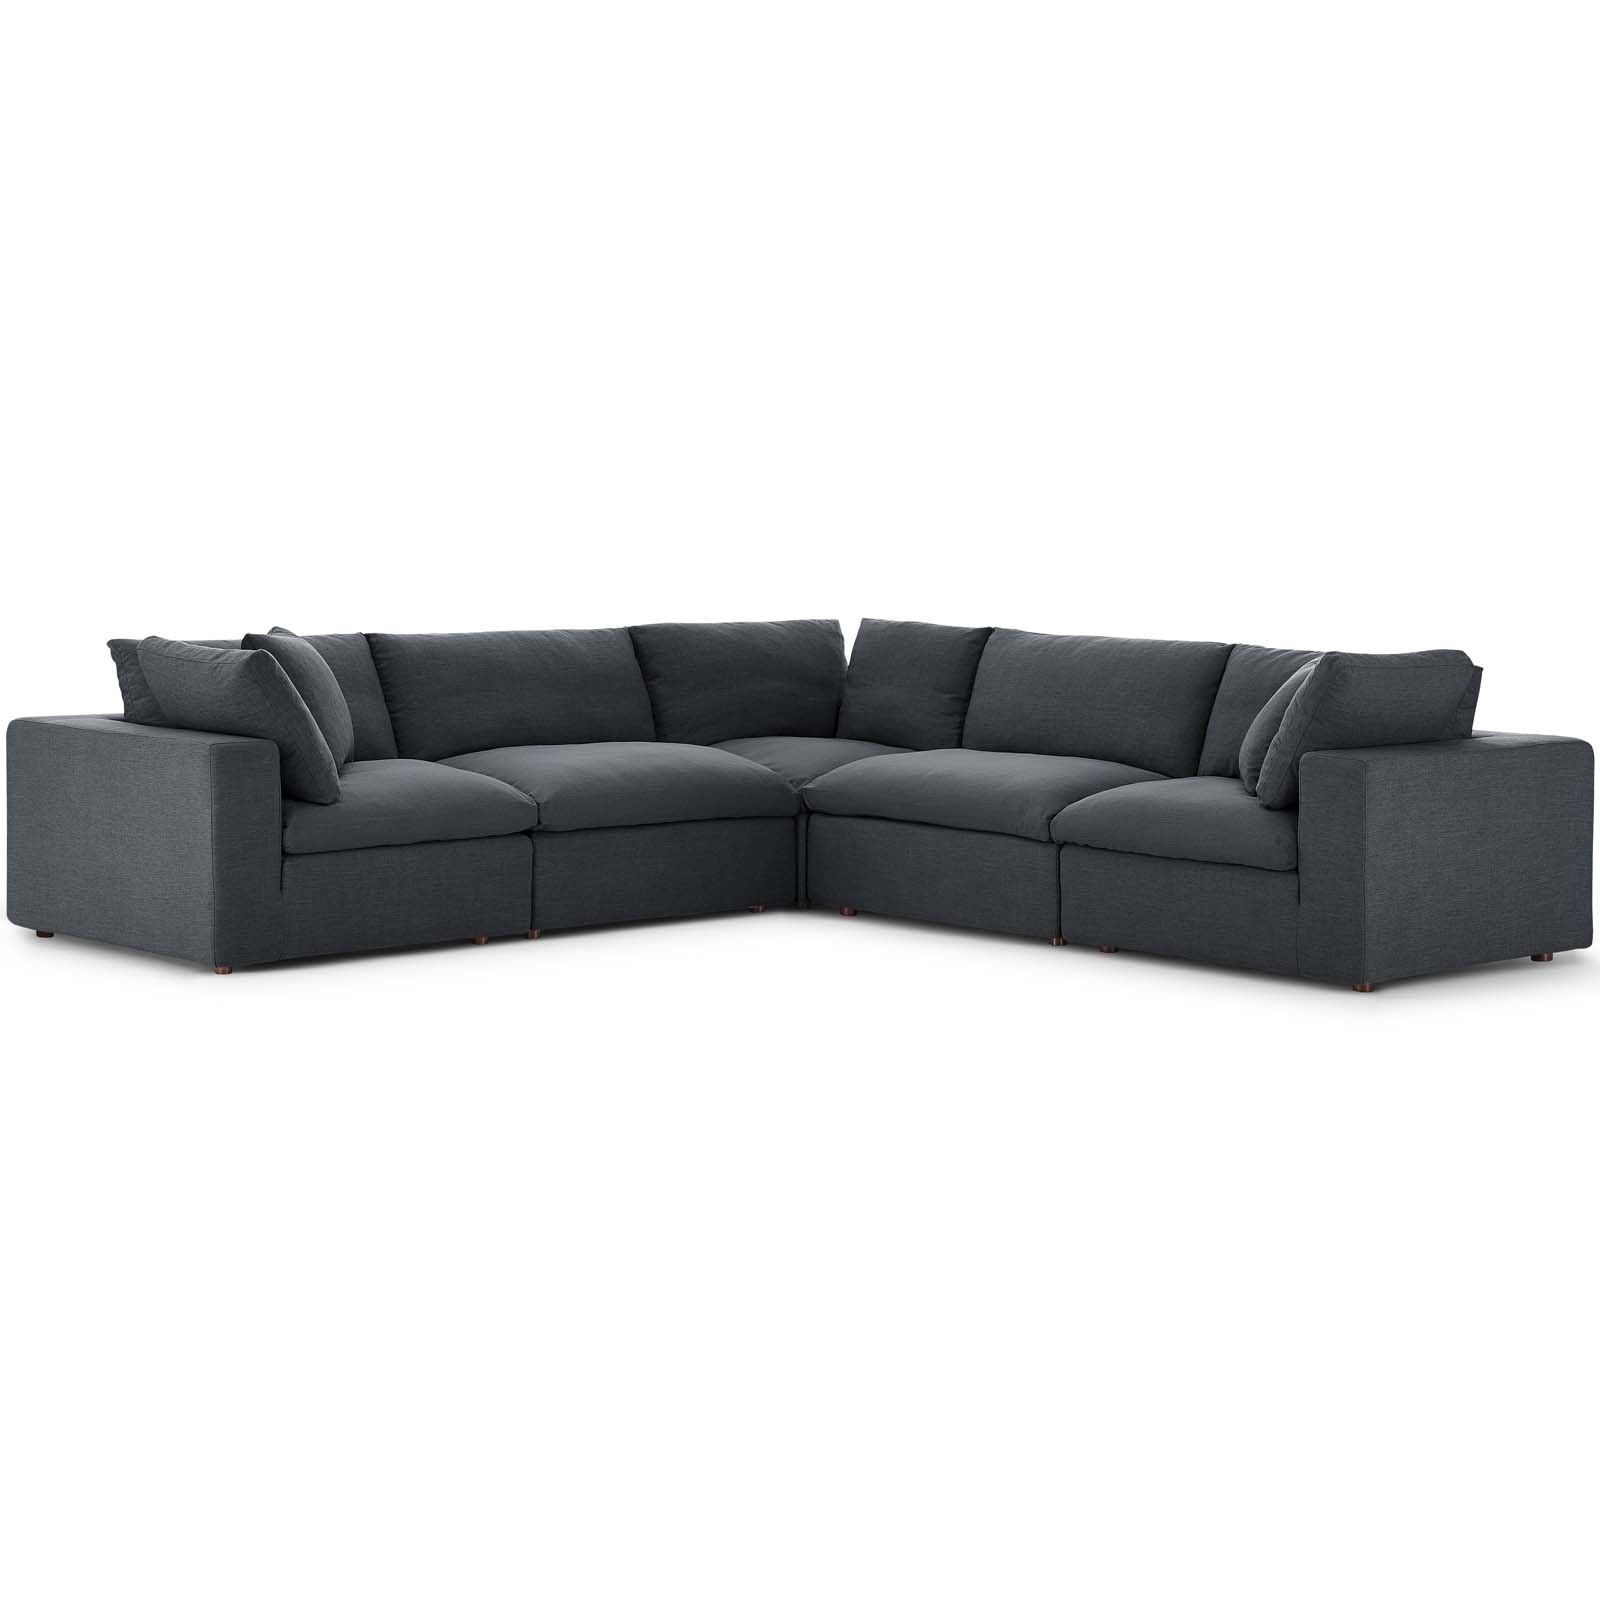 Commix Down Filled Overstuffed 5 Piece Sectional Sofa Set Gray Within Down Filled Sectional Sofas (View 5 of 15)